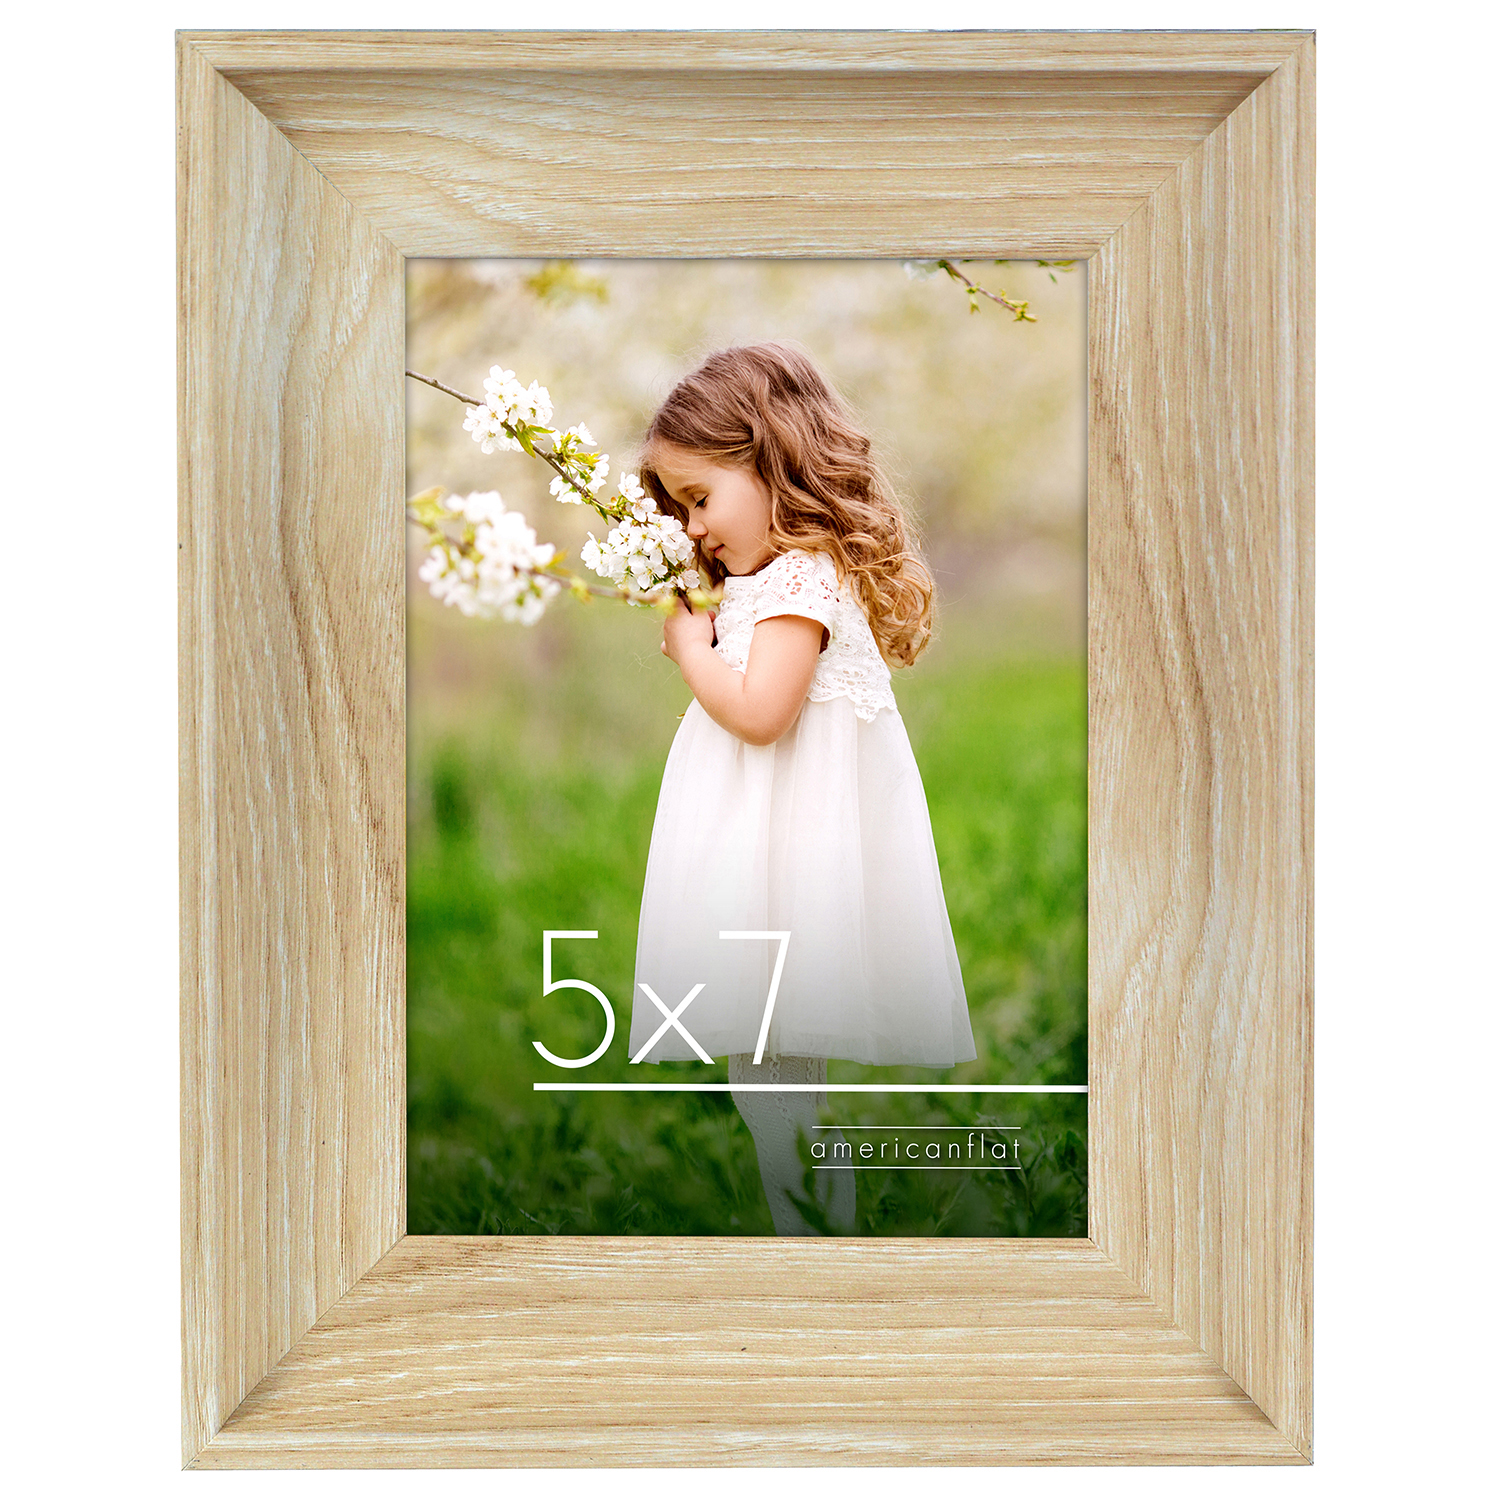 miniature 12 - Americanflat Wood Picture Frame 4x6 5x7 8x10 Wall Tabletop Easel Pick Size Color